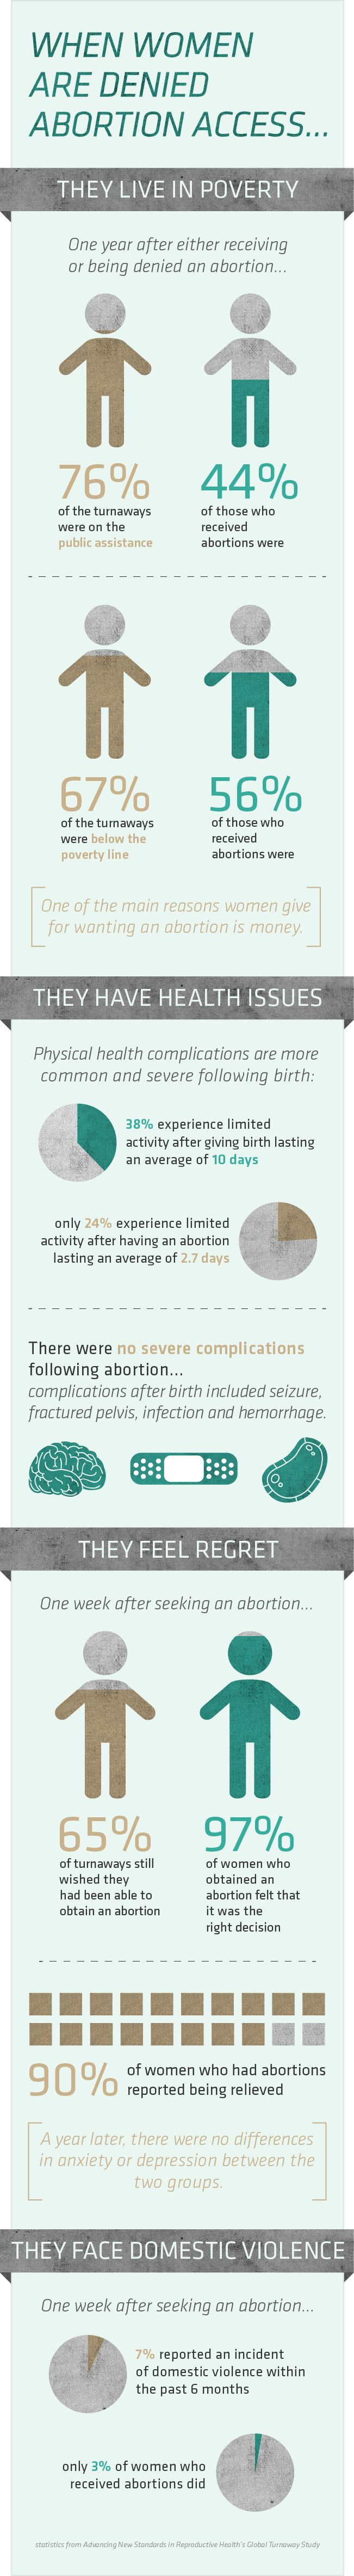 Education/Information: The consequences for women when they are denied the right to have an abortion!